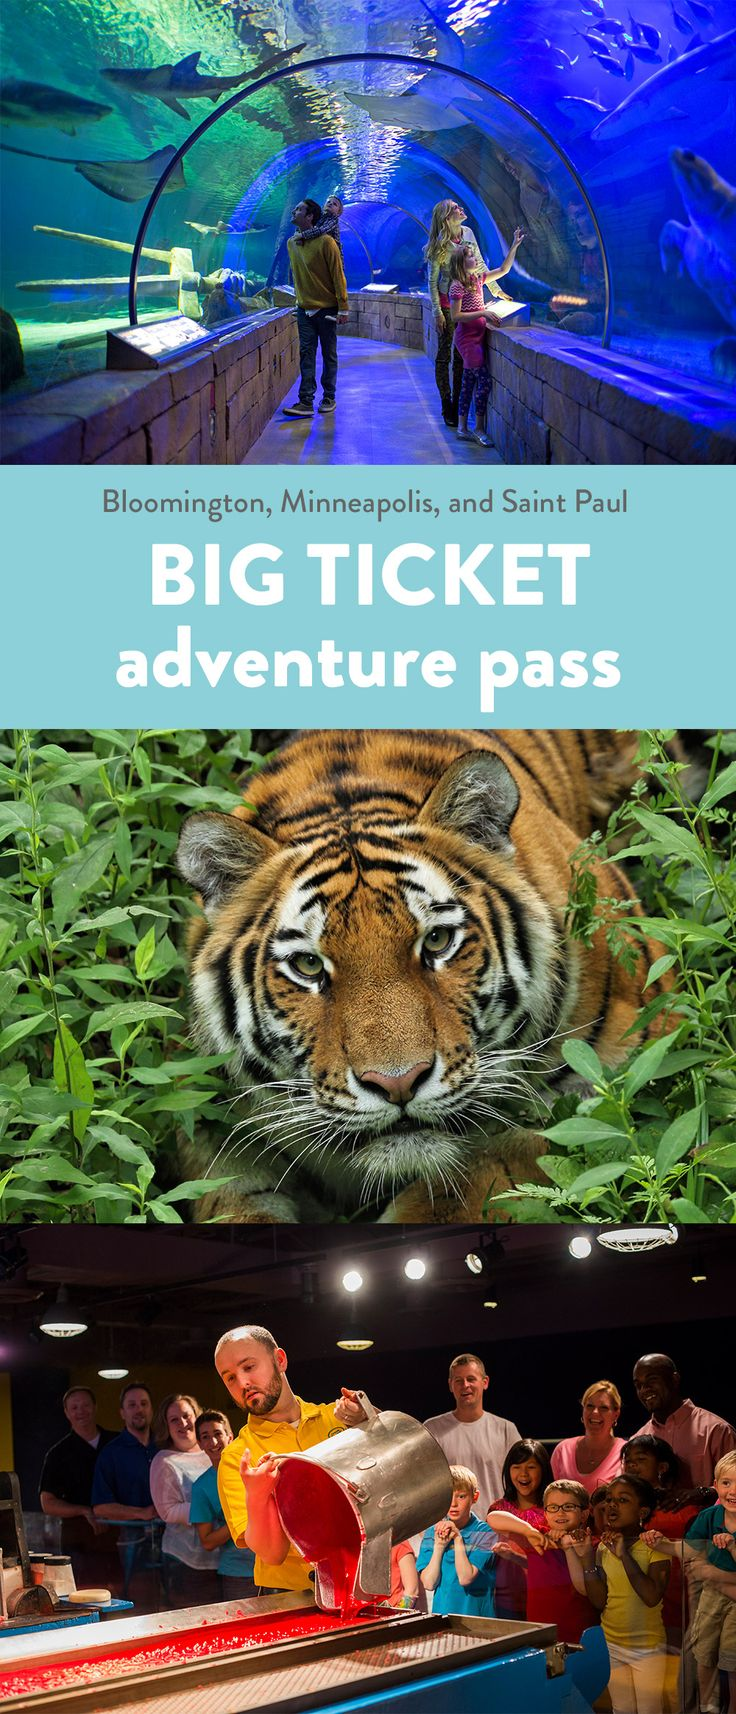 Purchase The Big Ticket for discounts at SEA LIFE Minnesota Aquarium, Minnesota Zoo, Crayola Experience, and more!